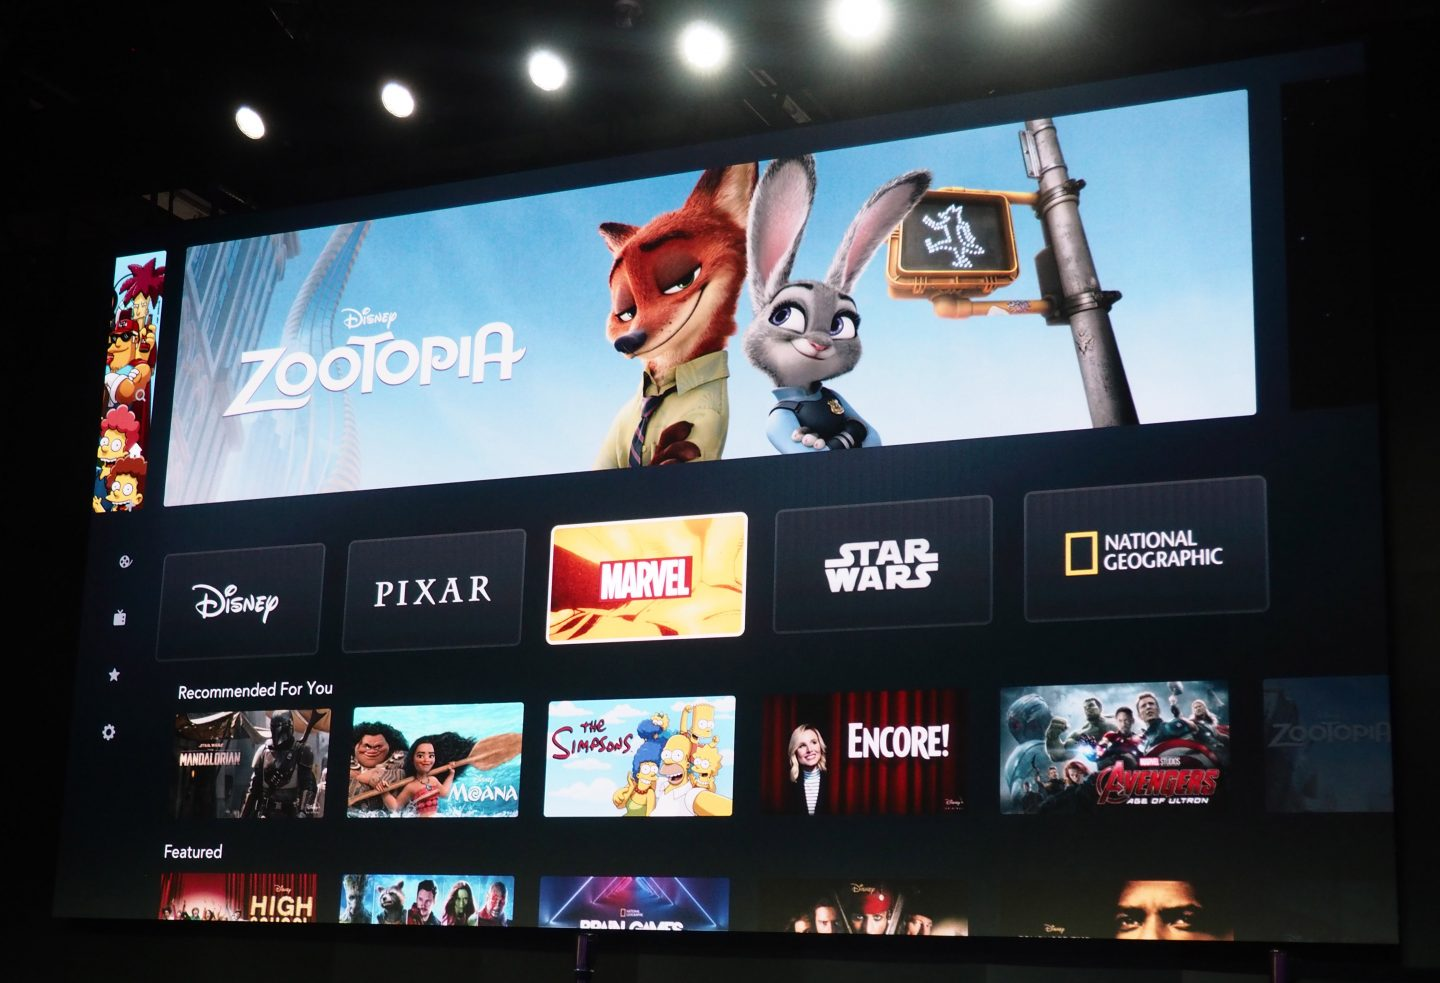 disney plus streaming service disney+